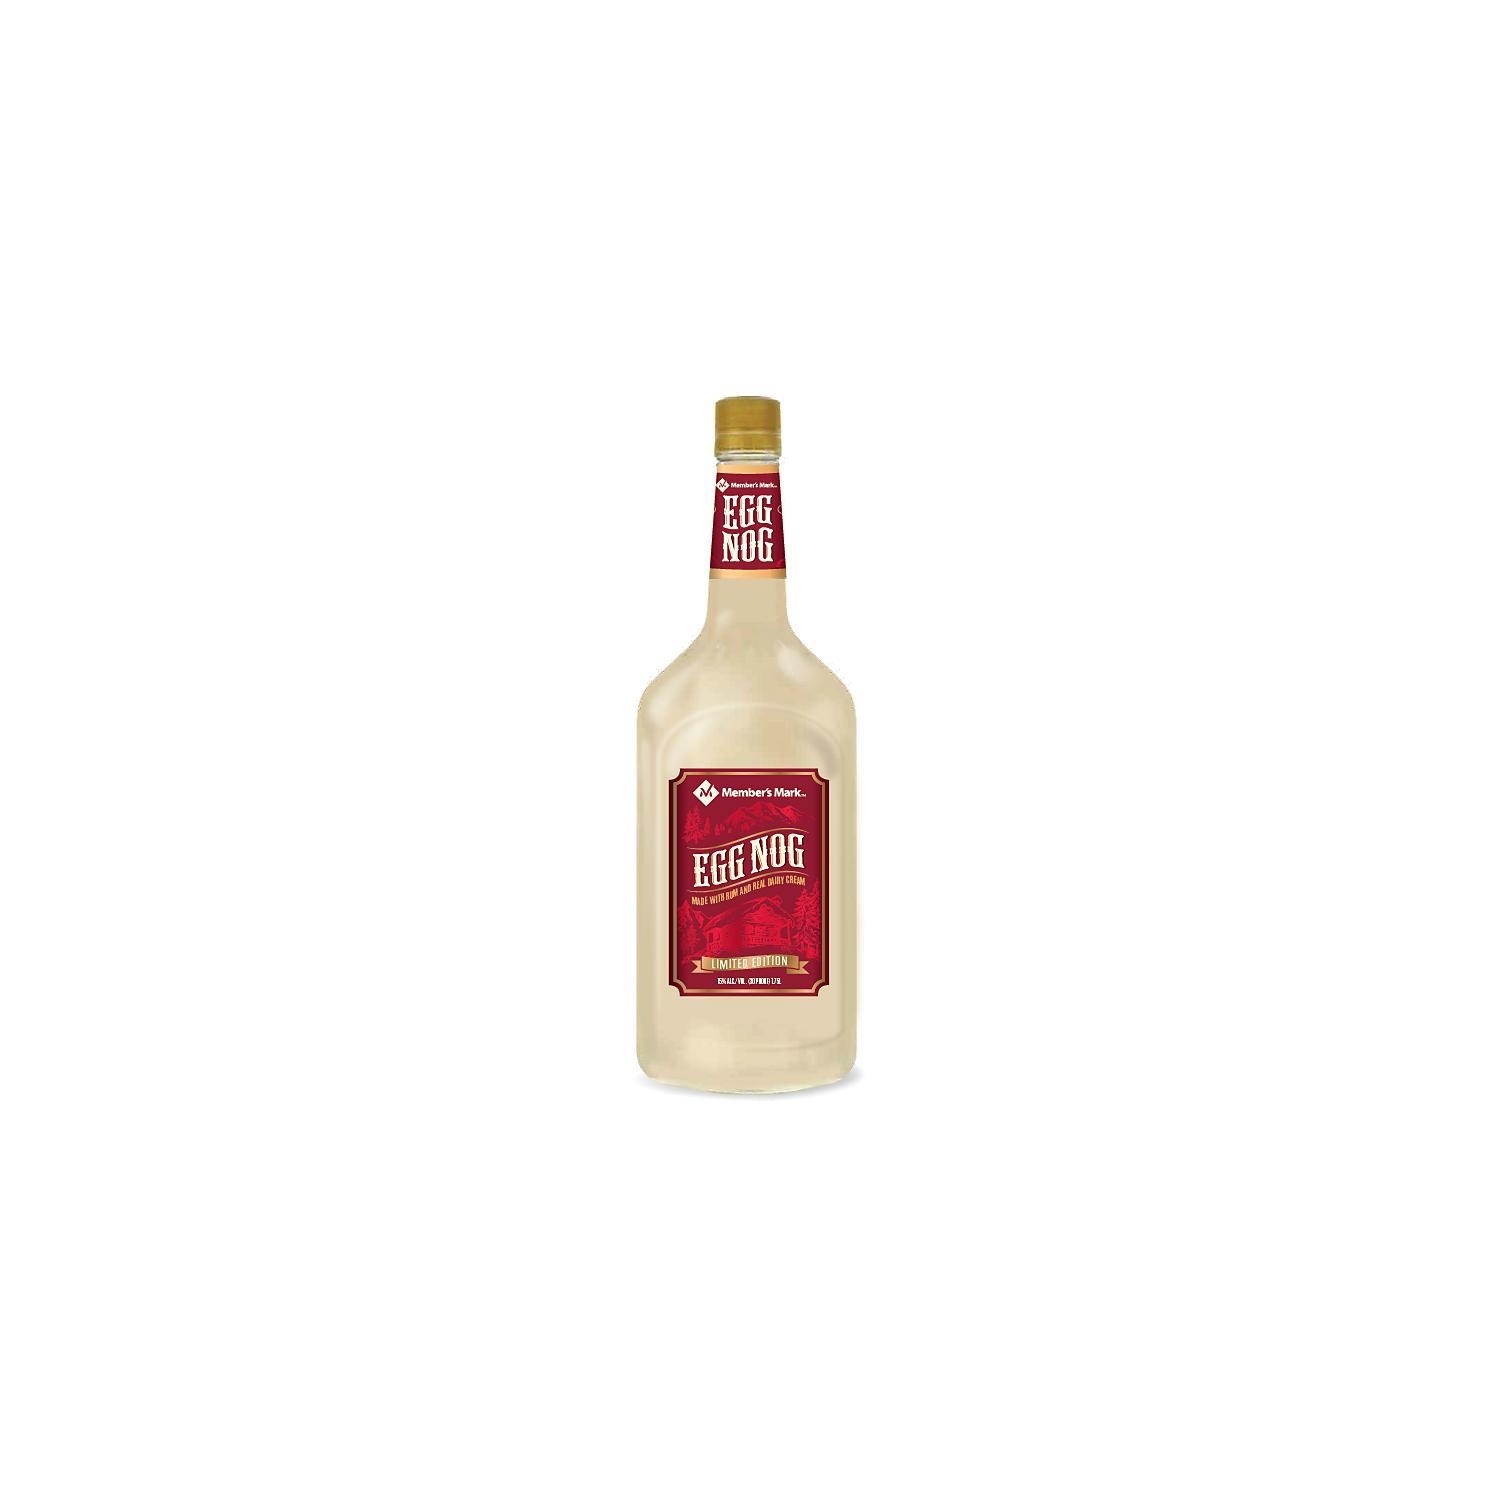 Sam's Club Sells Gold Medal-Worthy Eggnog For Under $10